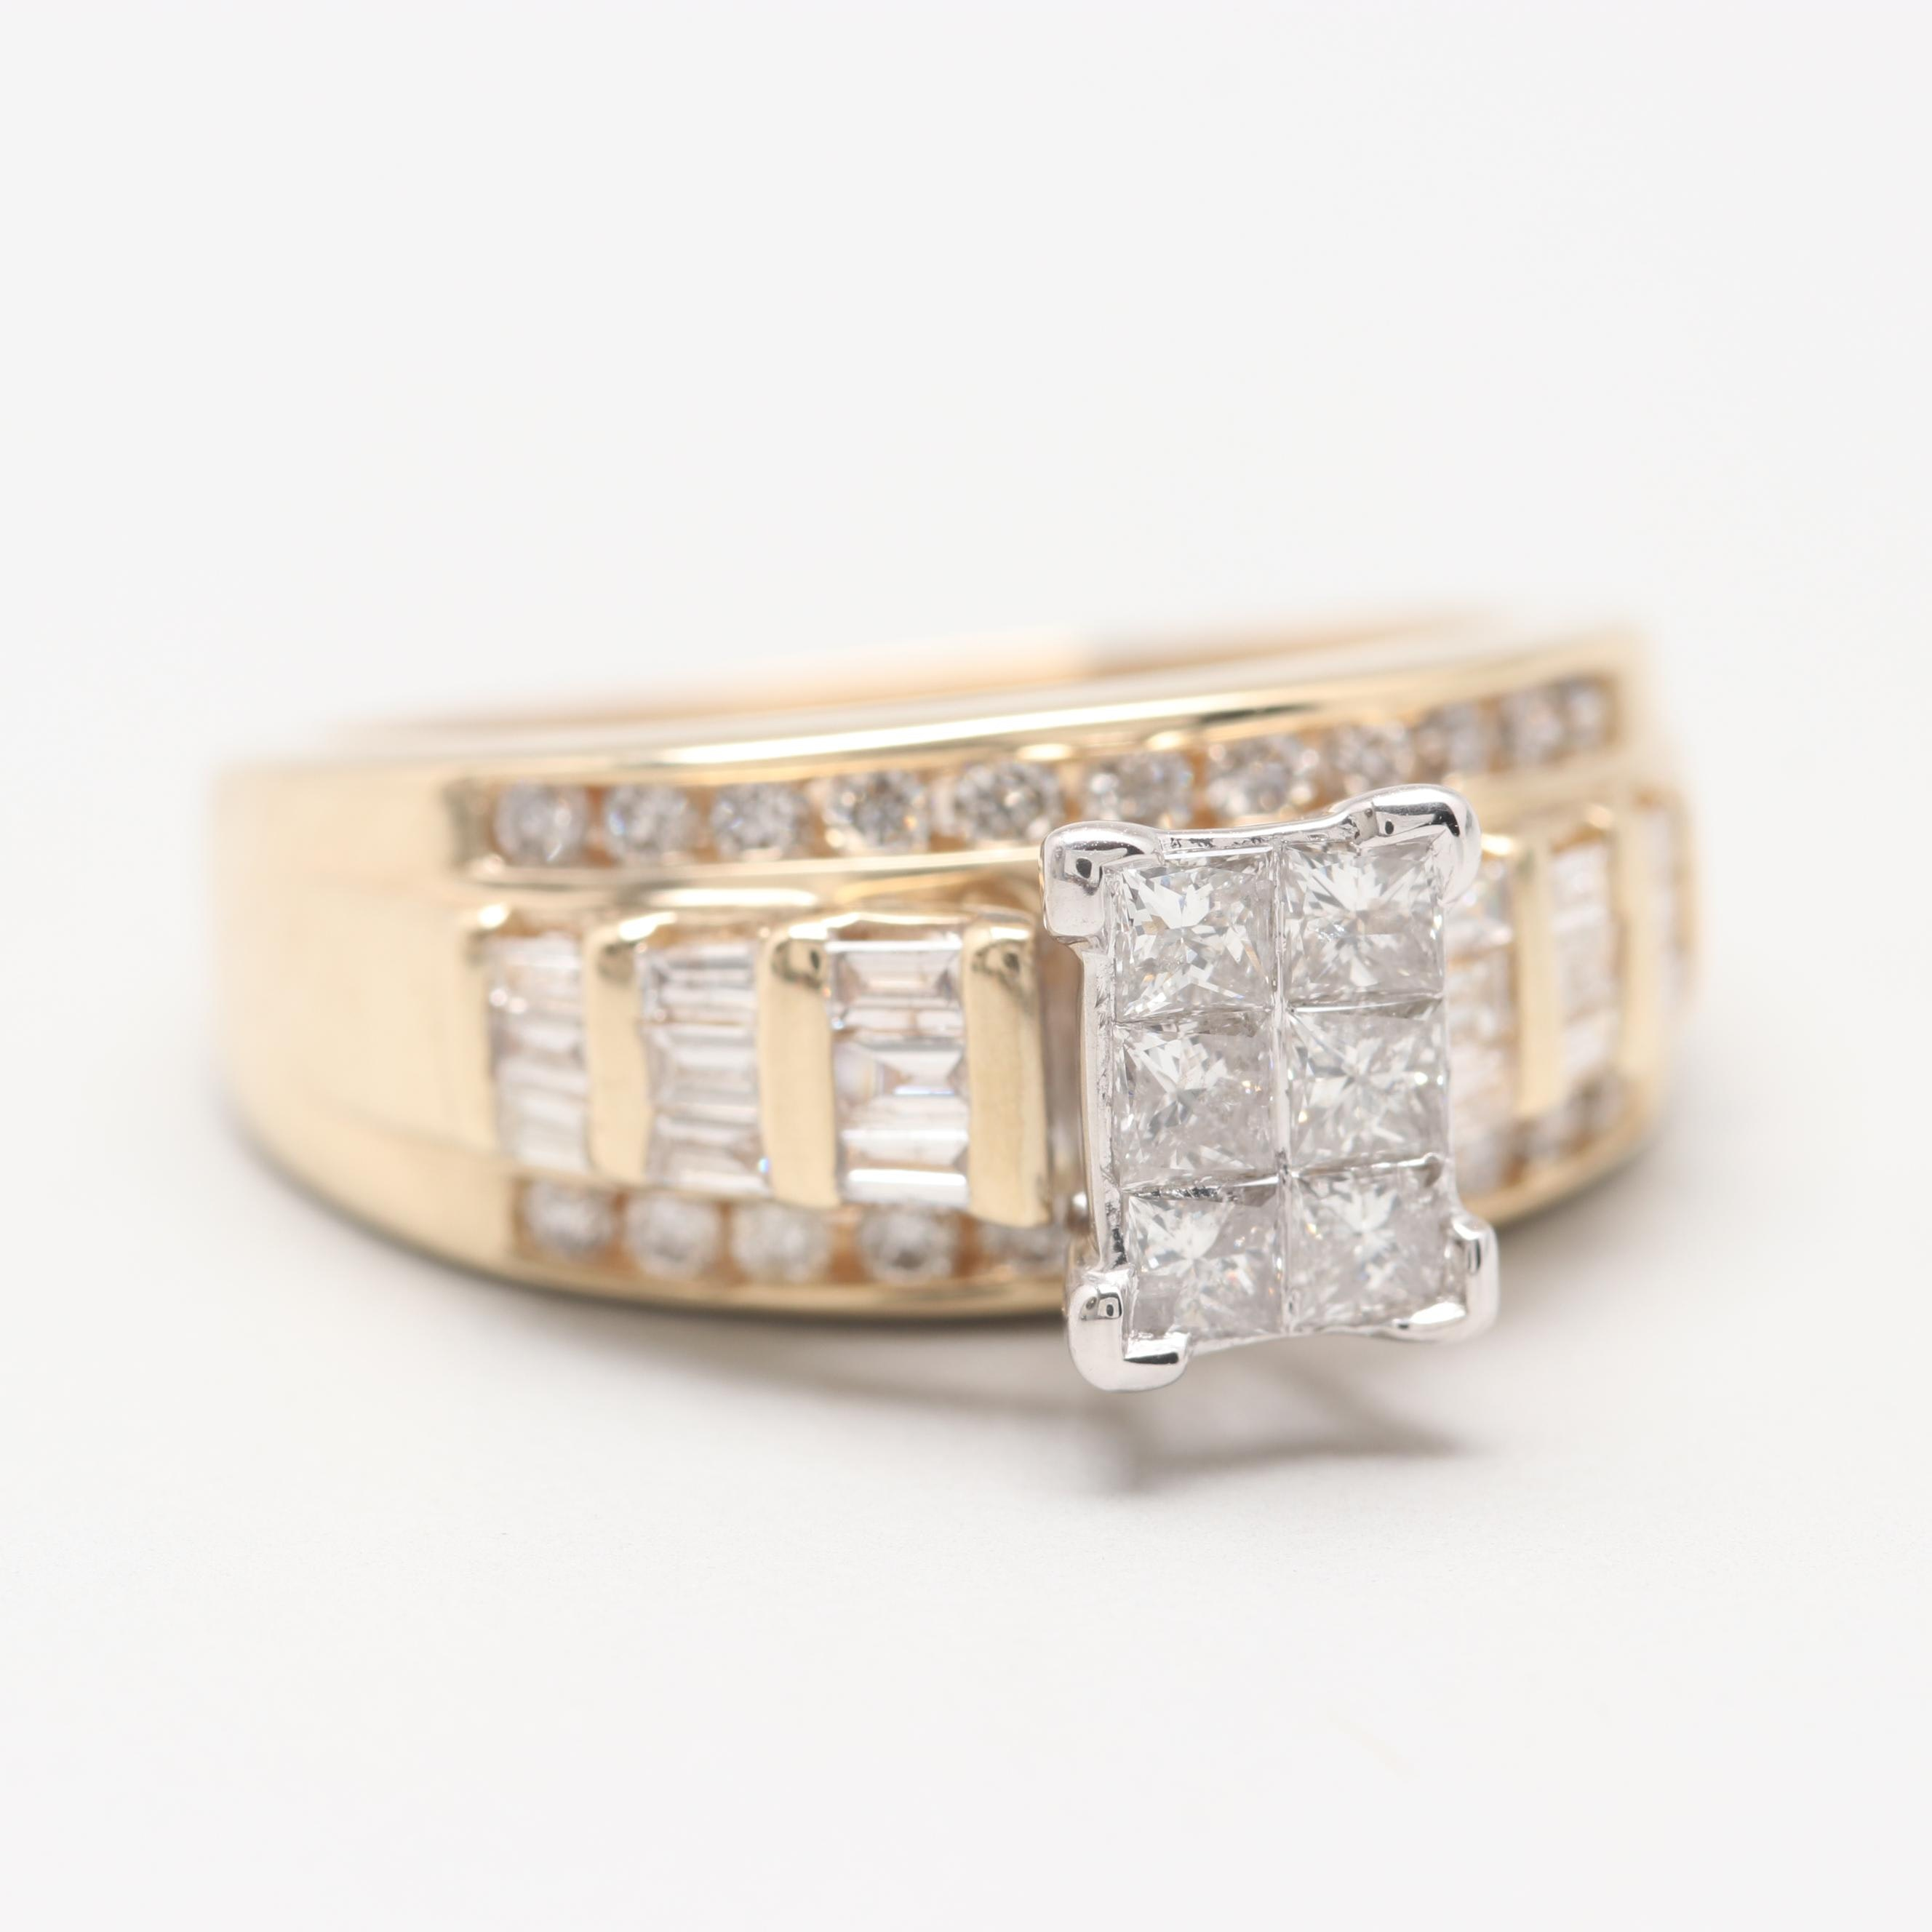 14K Yellow Gold 1.24 CTW Diamond Ring